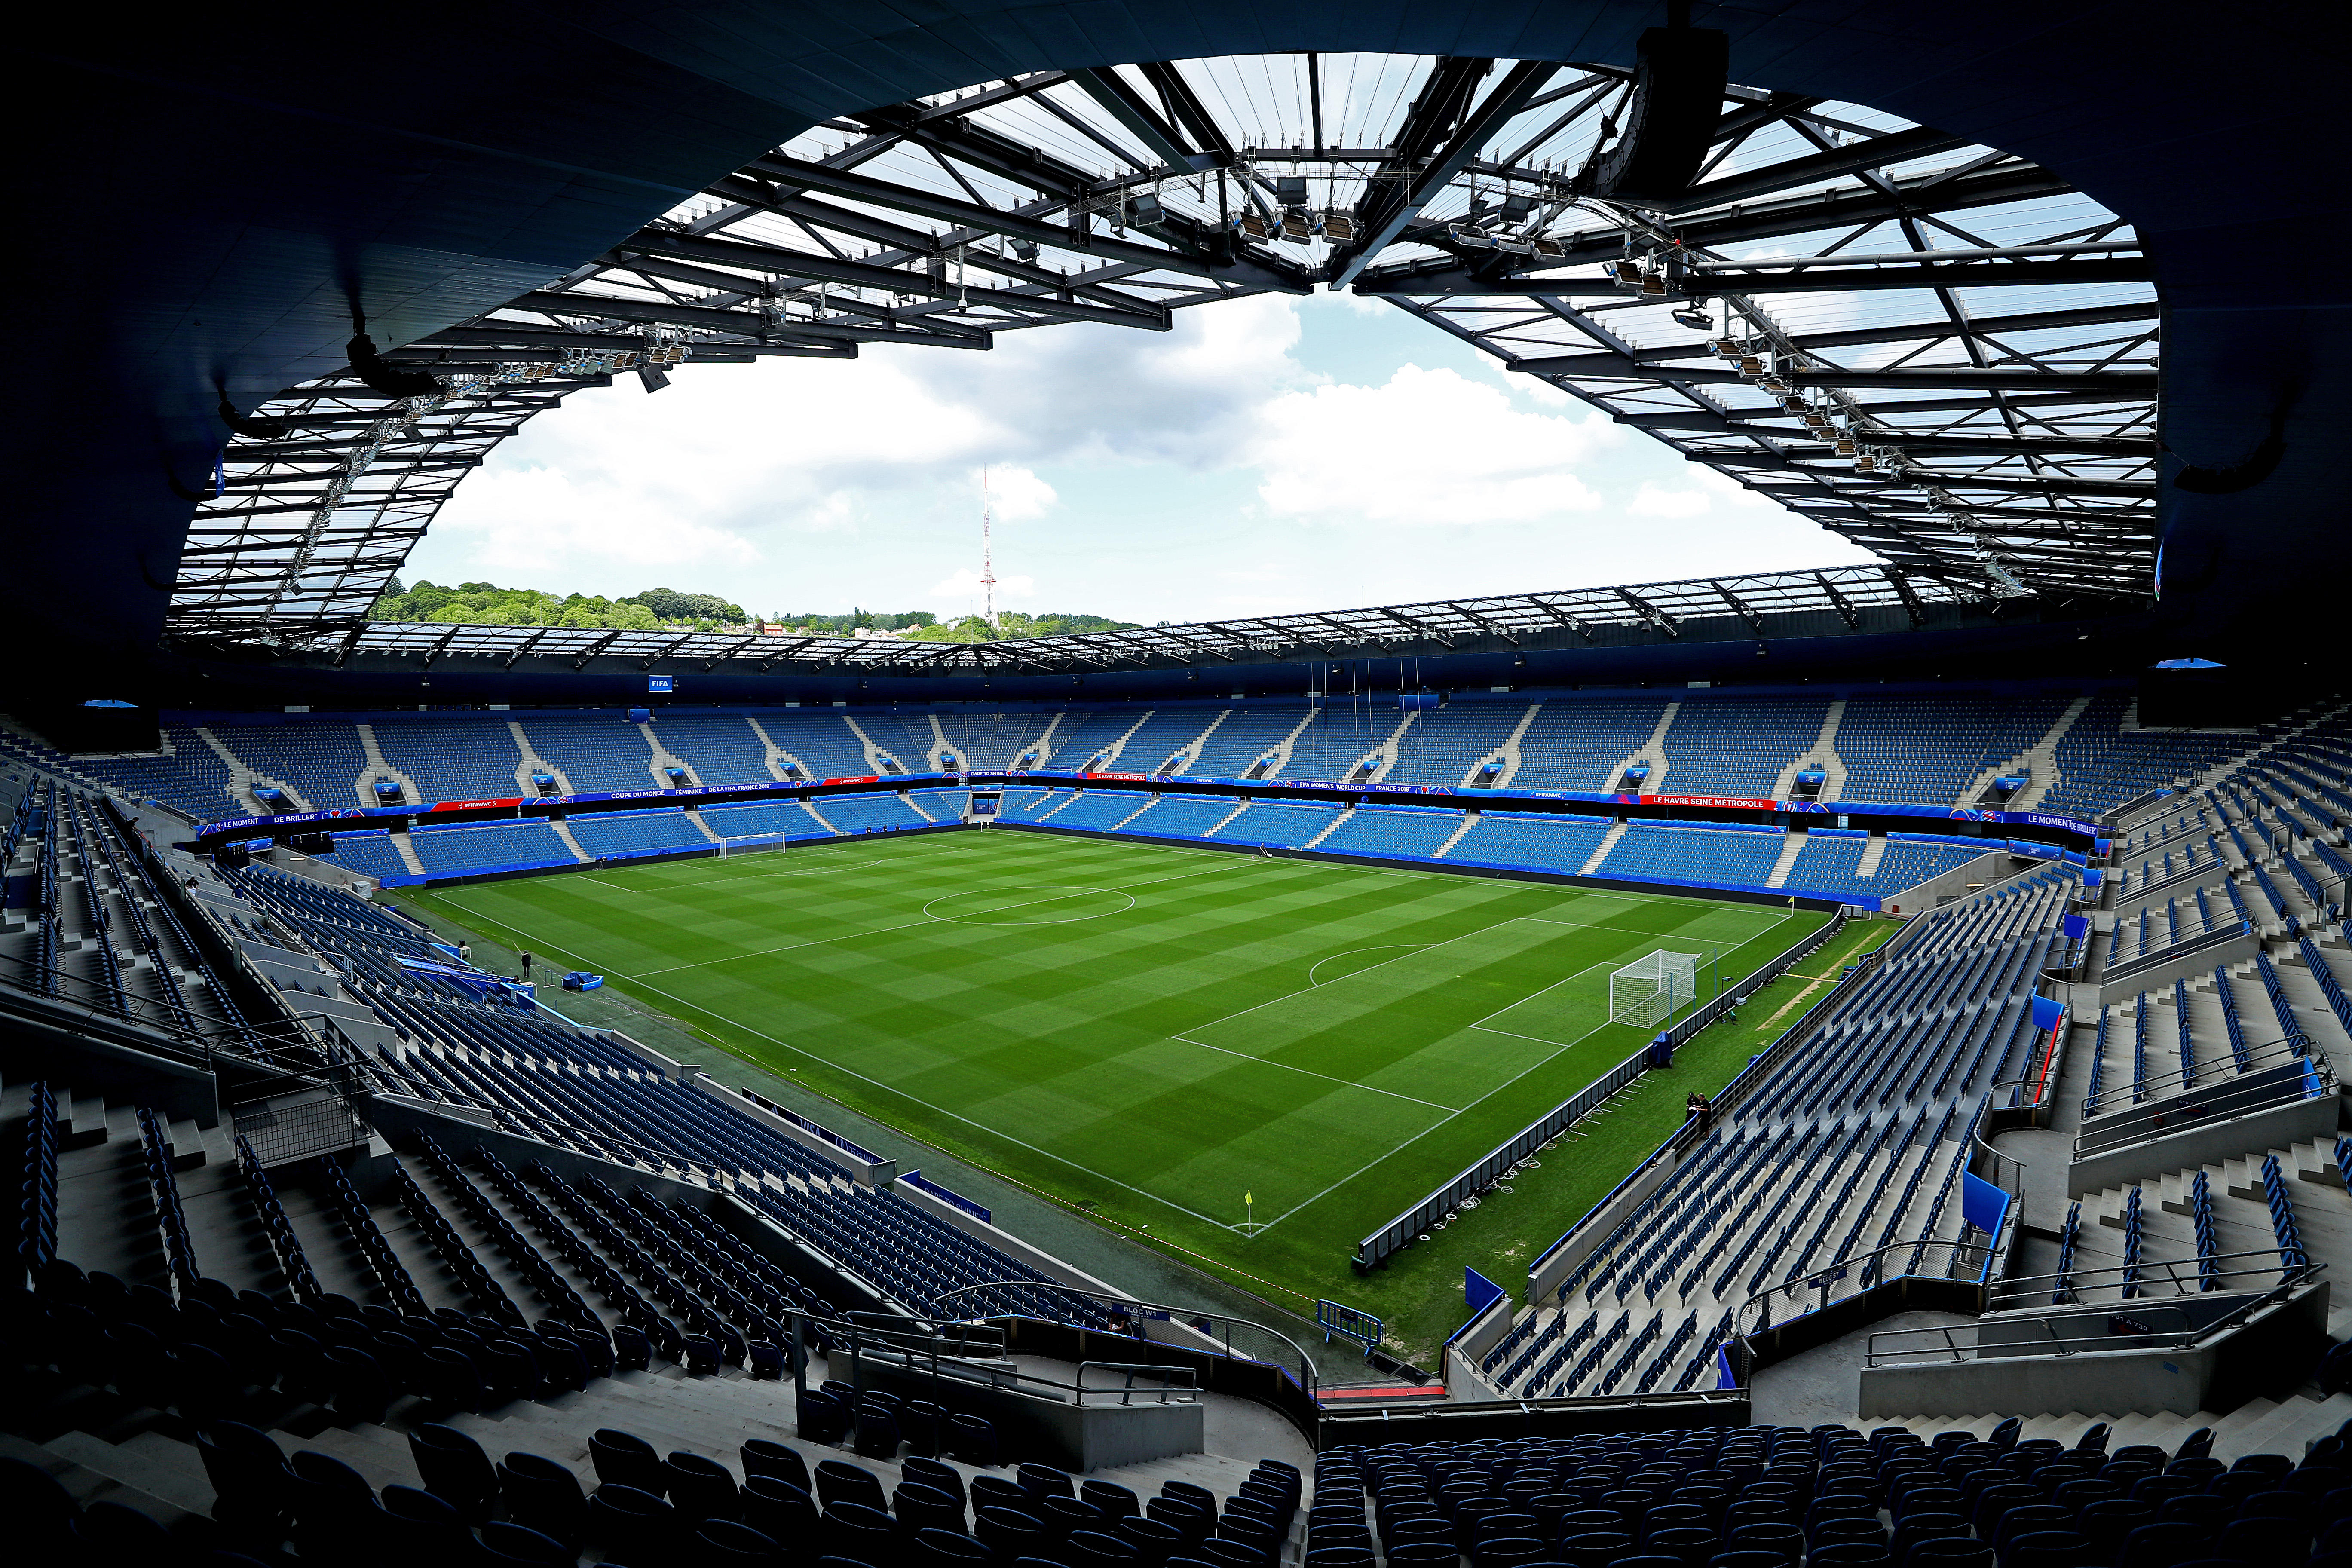 Previews - FIFA Women's World Cup France 2019